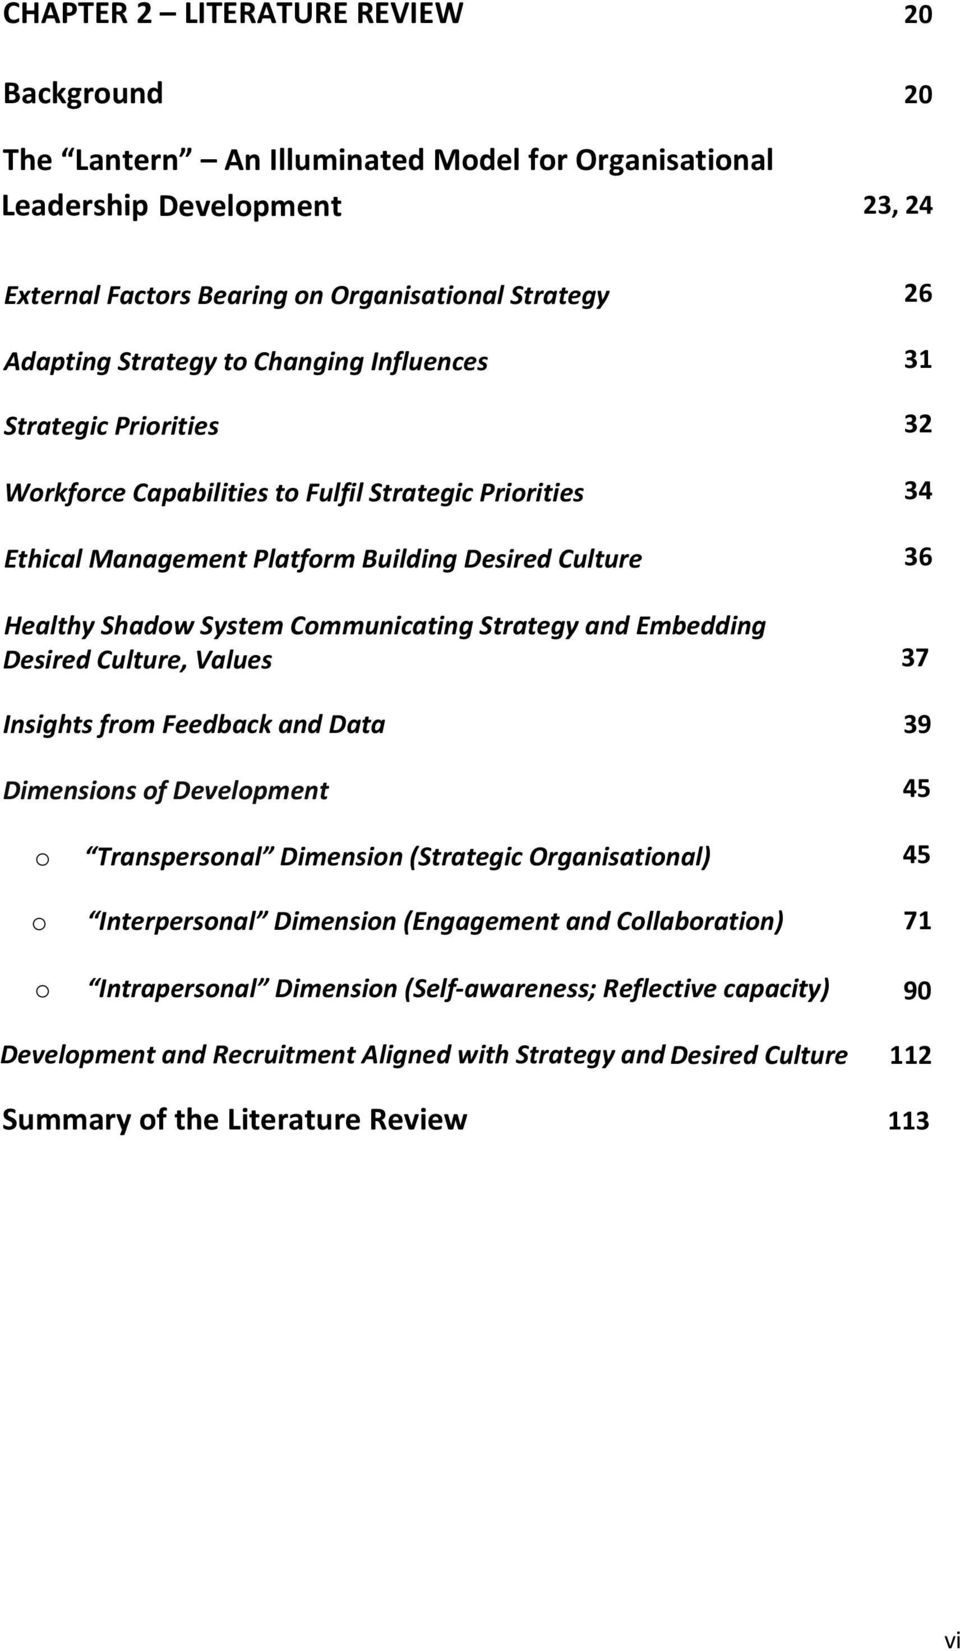 Strategy and Embedding Desired Culture, Values 37 Insights from Feedback and Data 39 Dimensions of Development 45 o Transpersonal Dimension (Strategic Organisational) 45 o Interpersonal Dimension